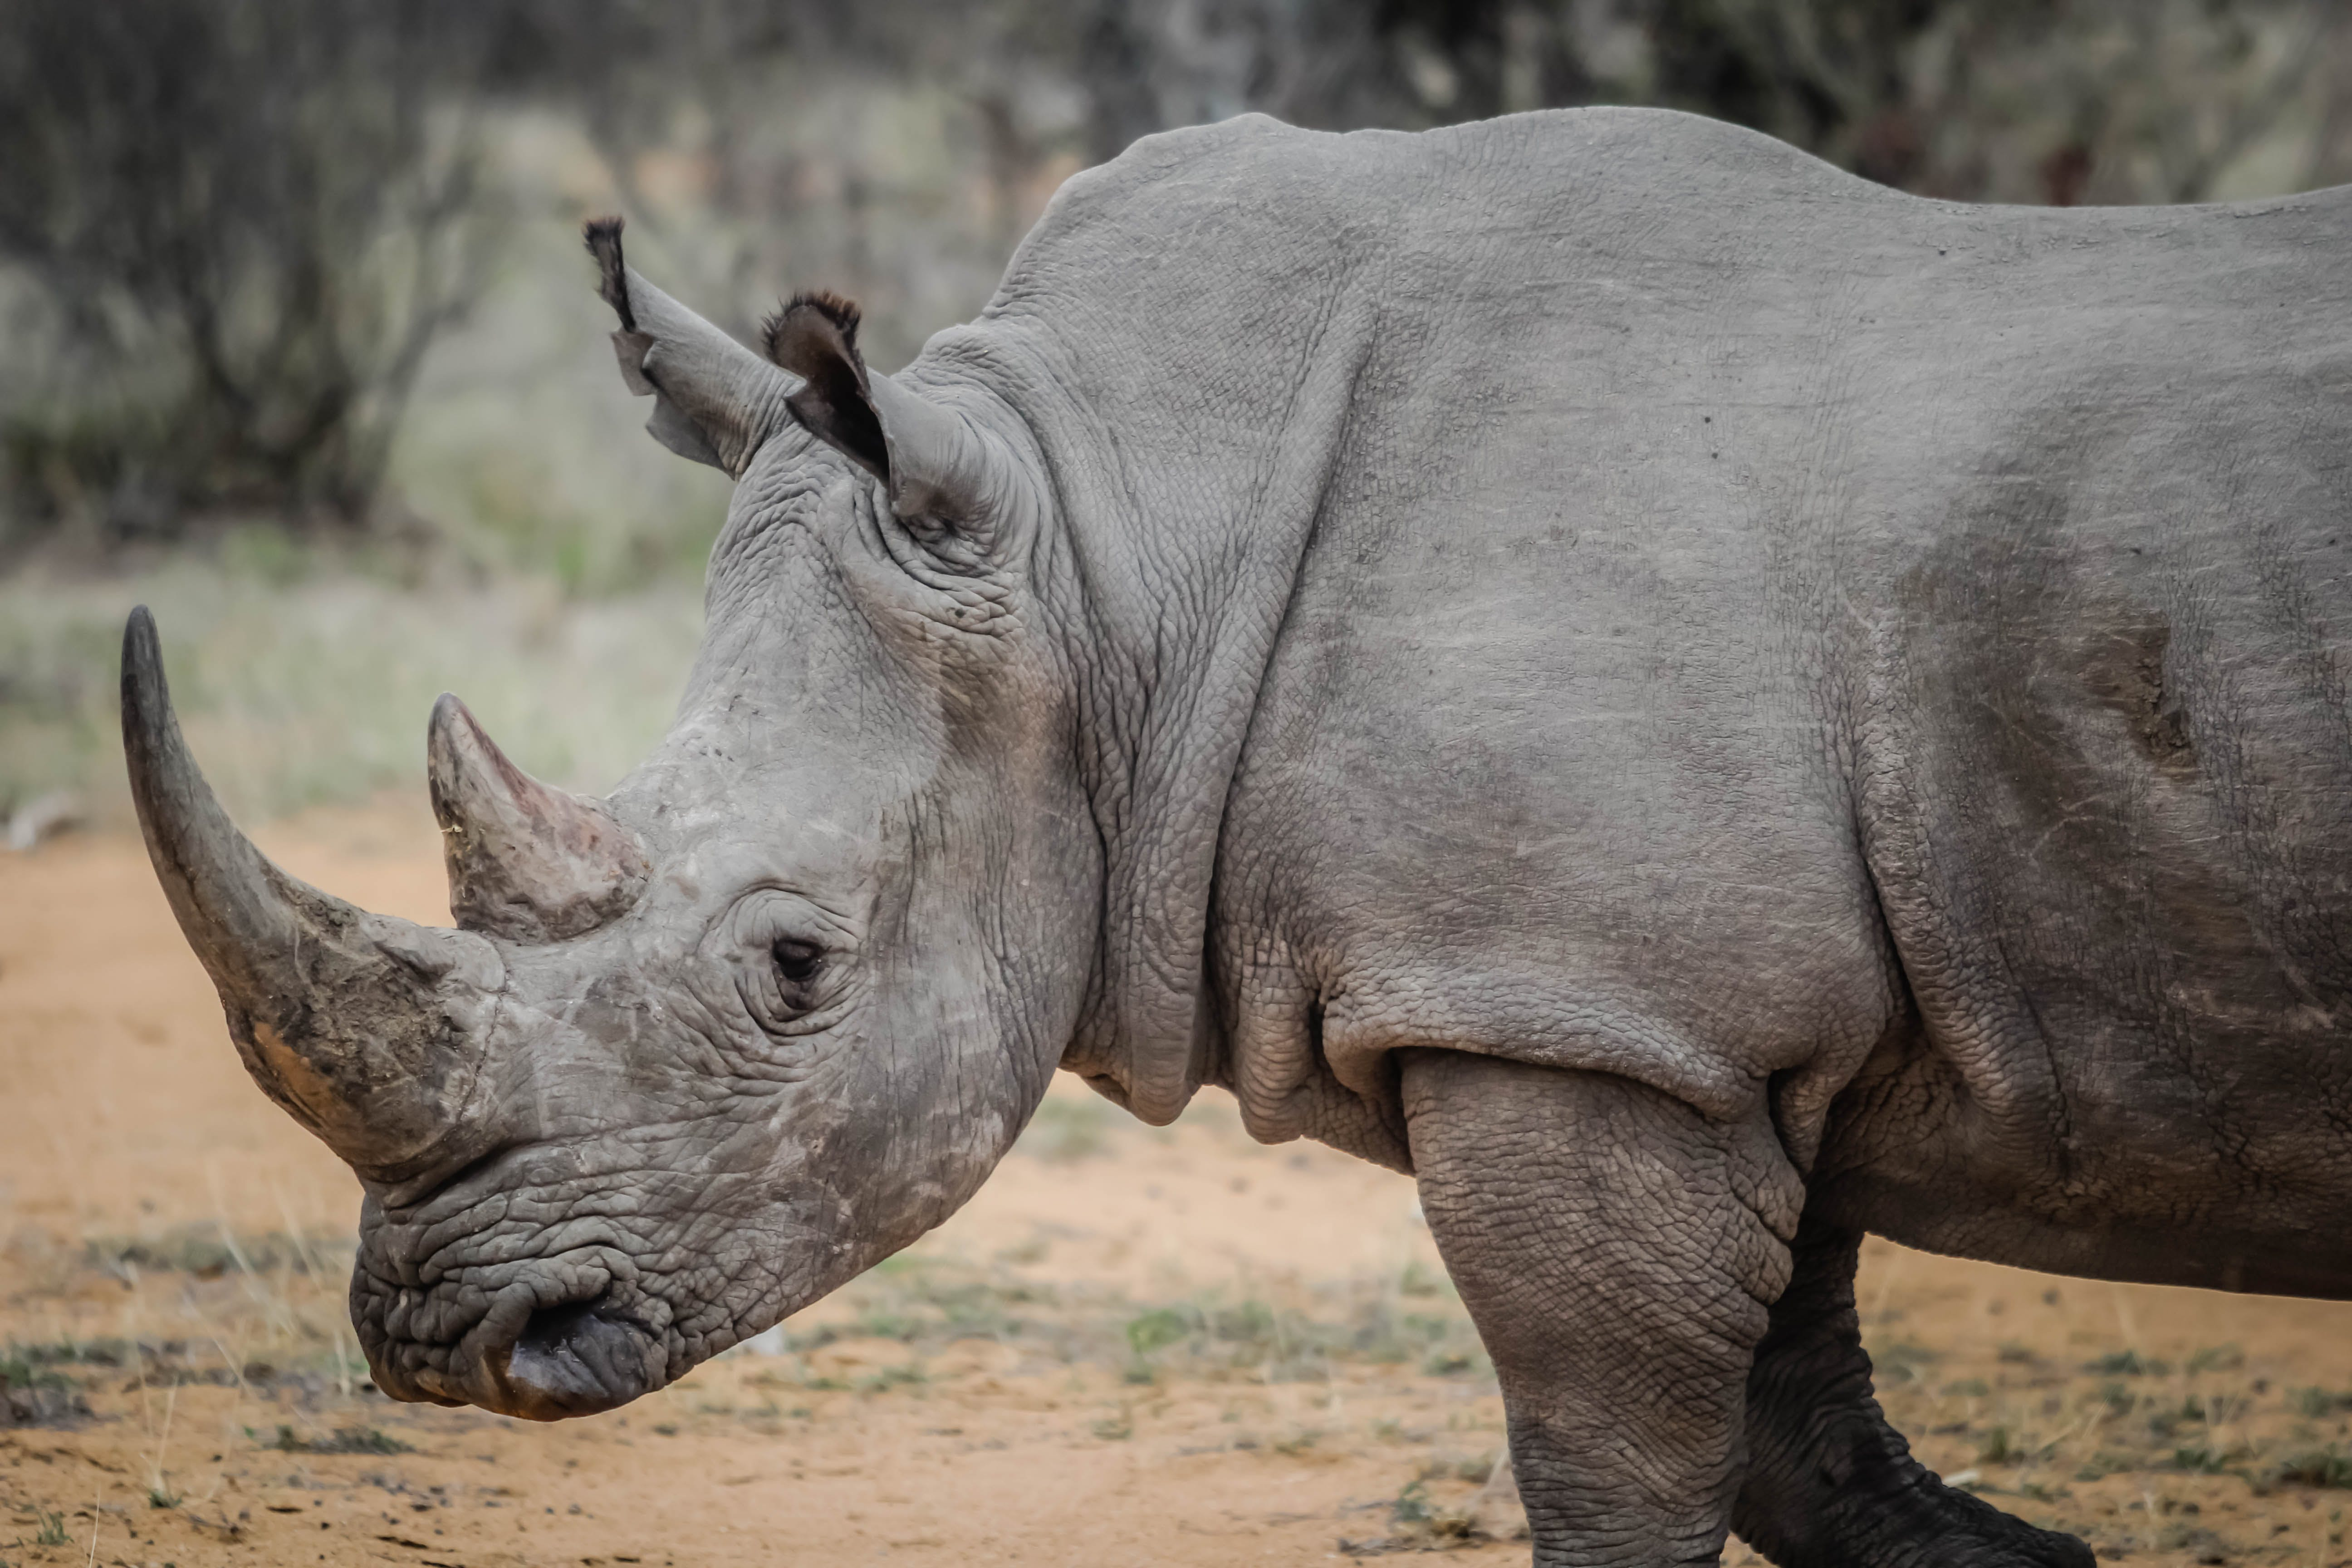 Gray Rhinoceros in Close-up Photography